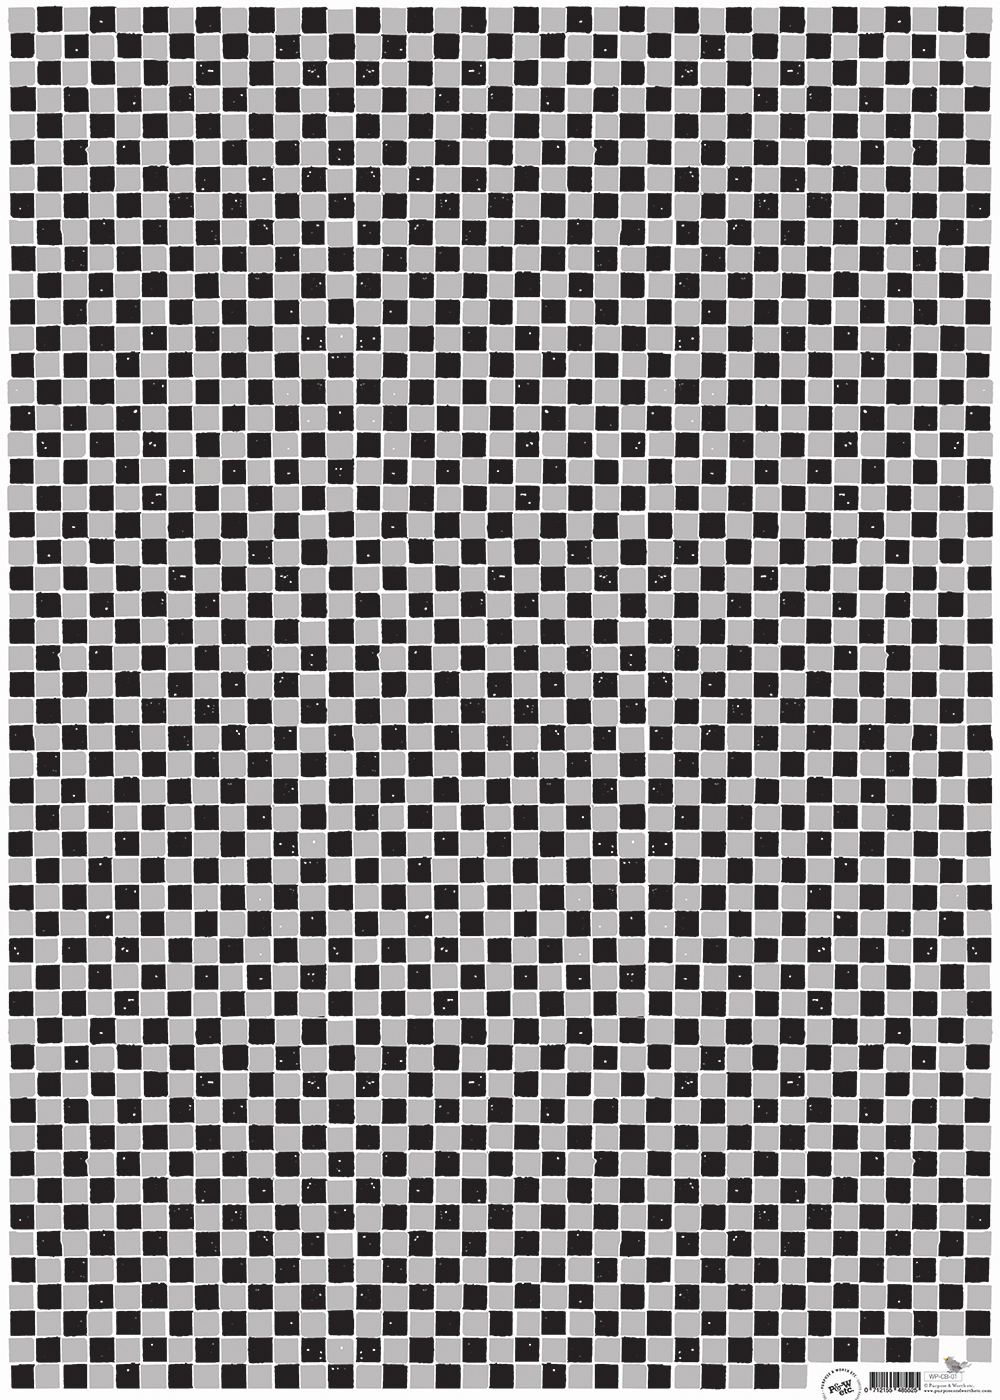 Checkerboard wrapping paper, Grey + black: WP_CBBG_01